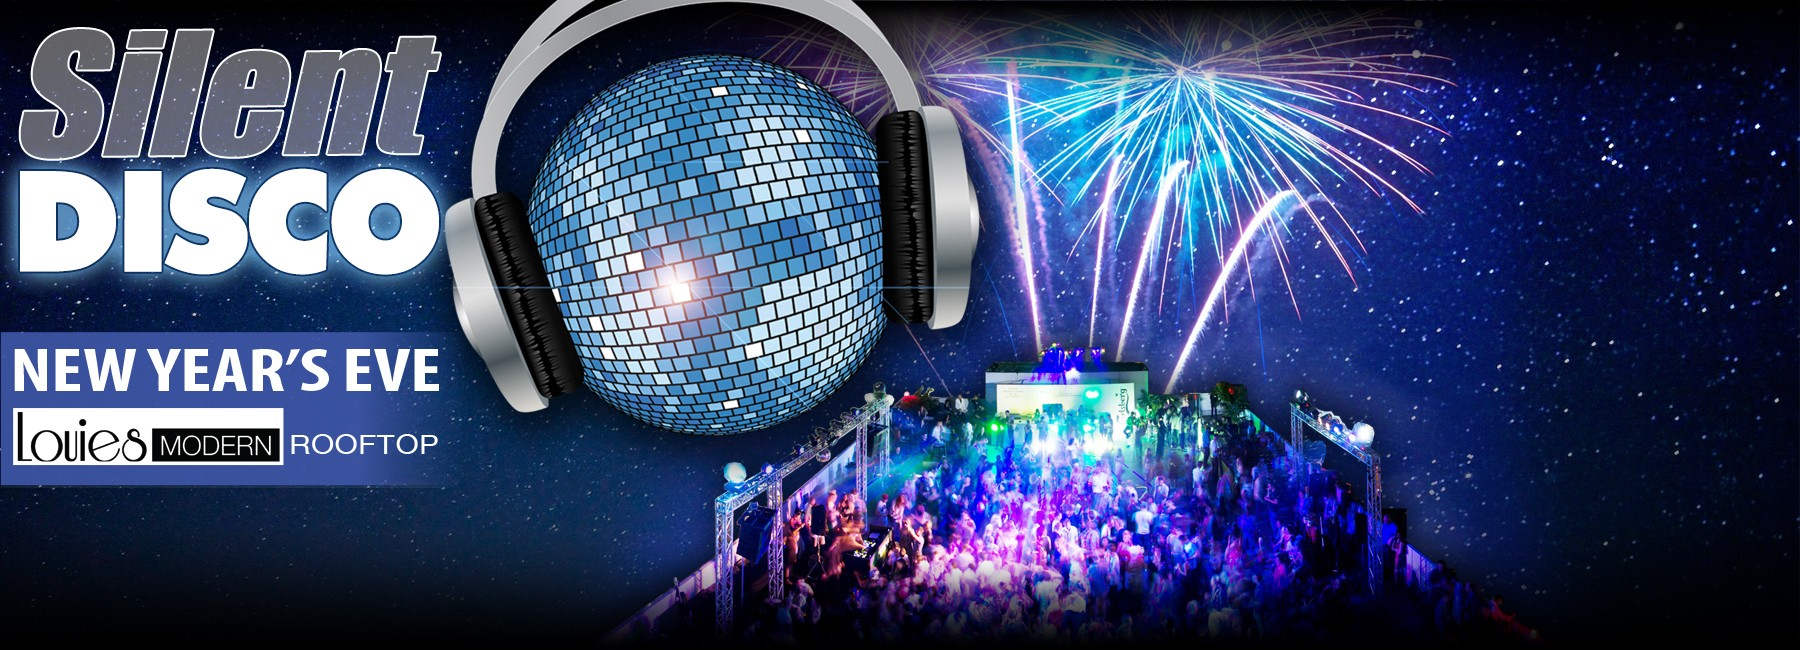 Silent Disco New Year's Eve Party